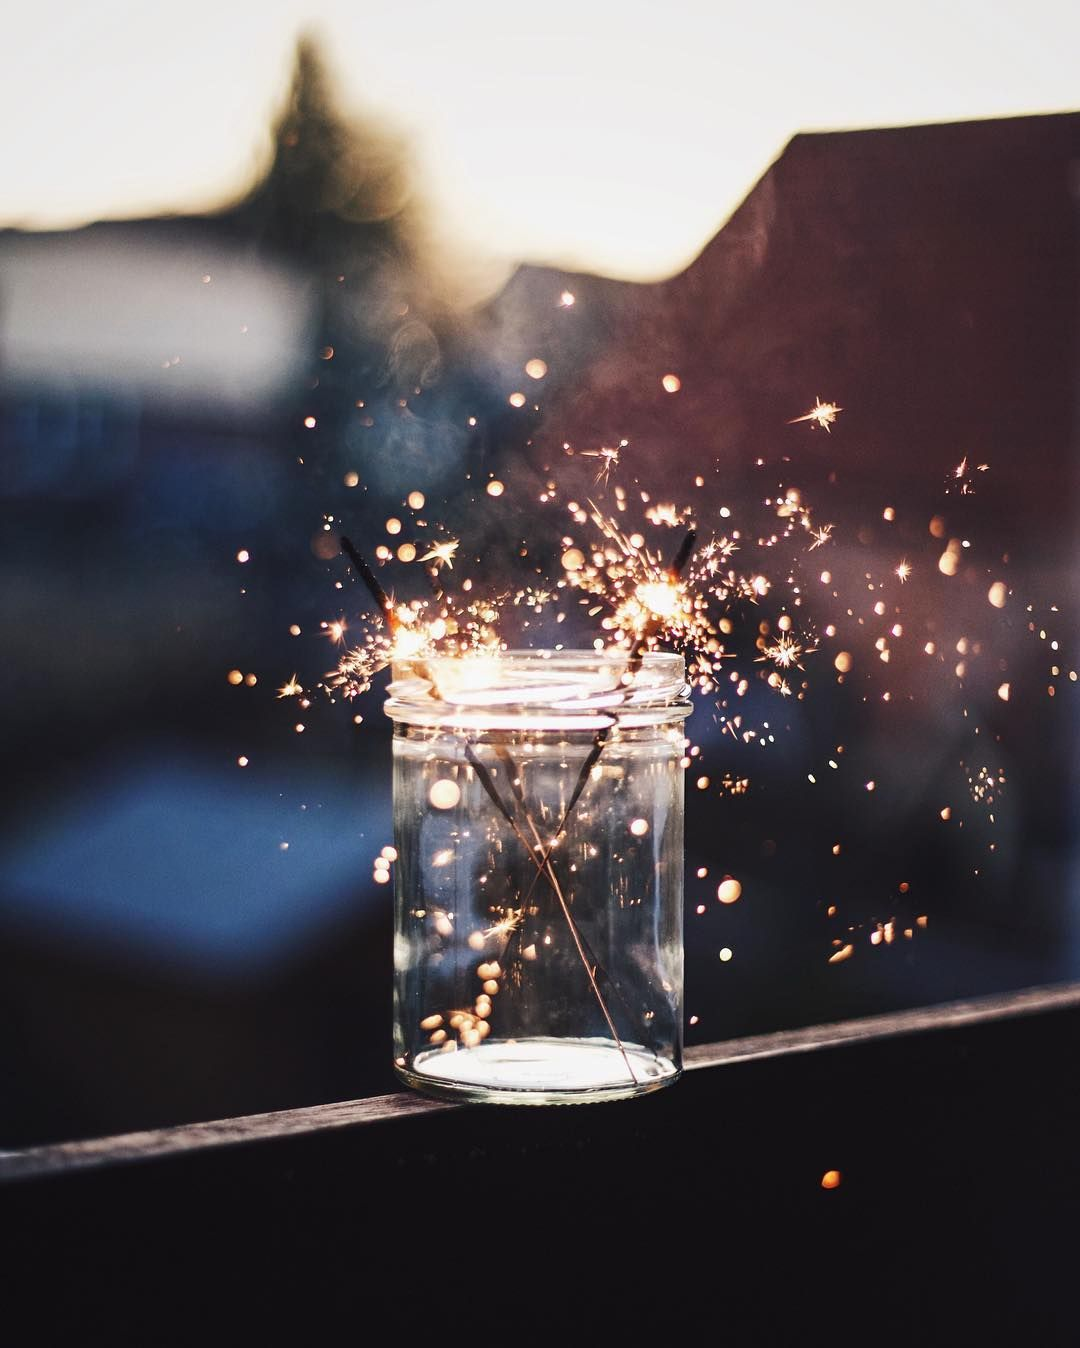 Via lelciaa on instagram sparklers sparkler photography fireworks photography christmas tumblr photography